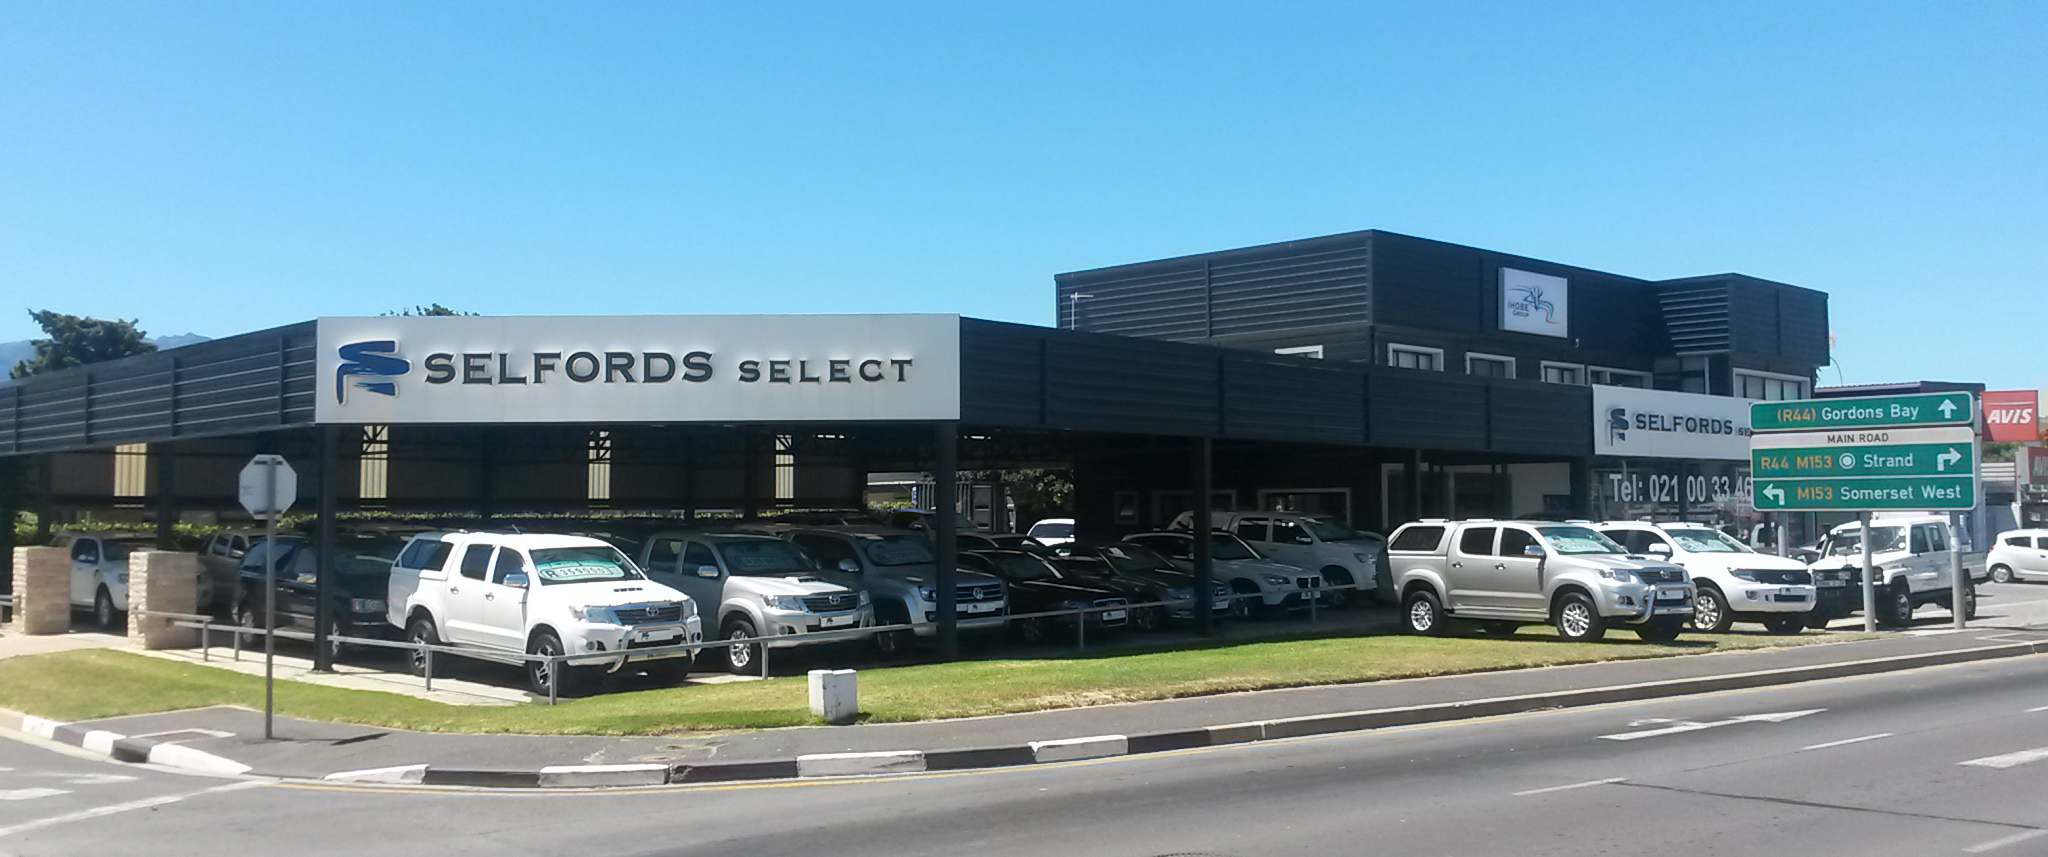 Selfords select home selfords select for Select home